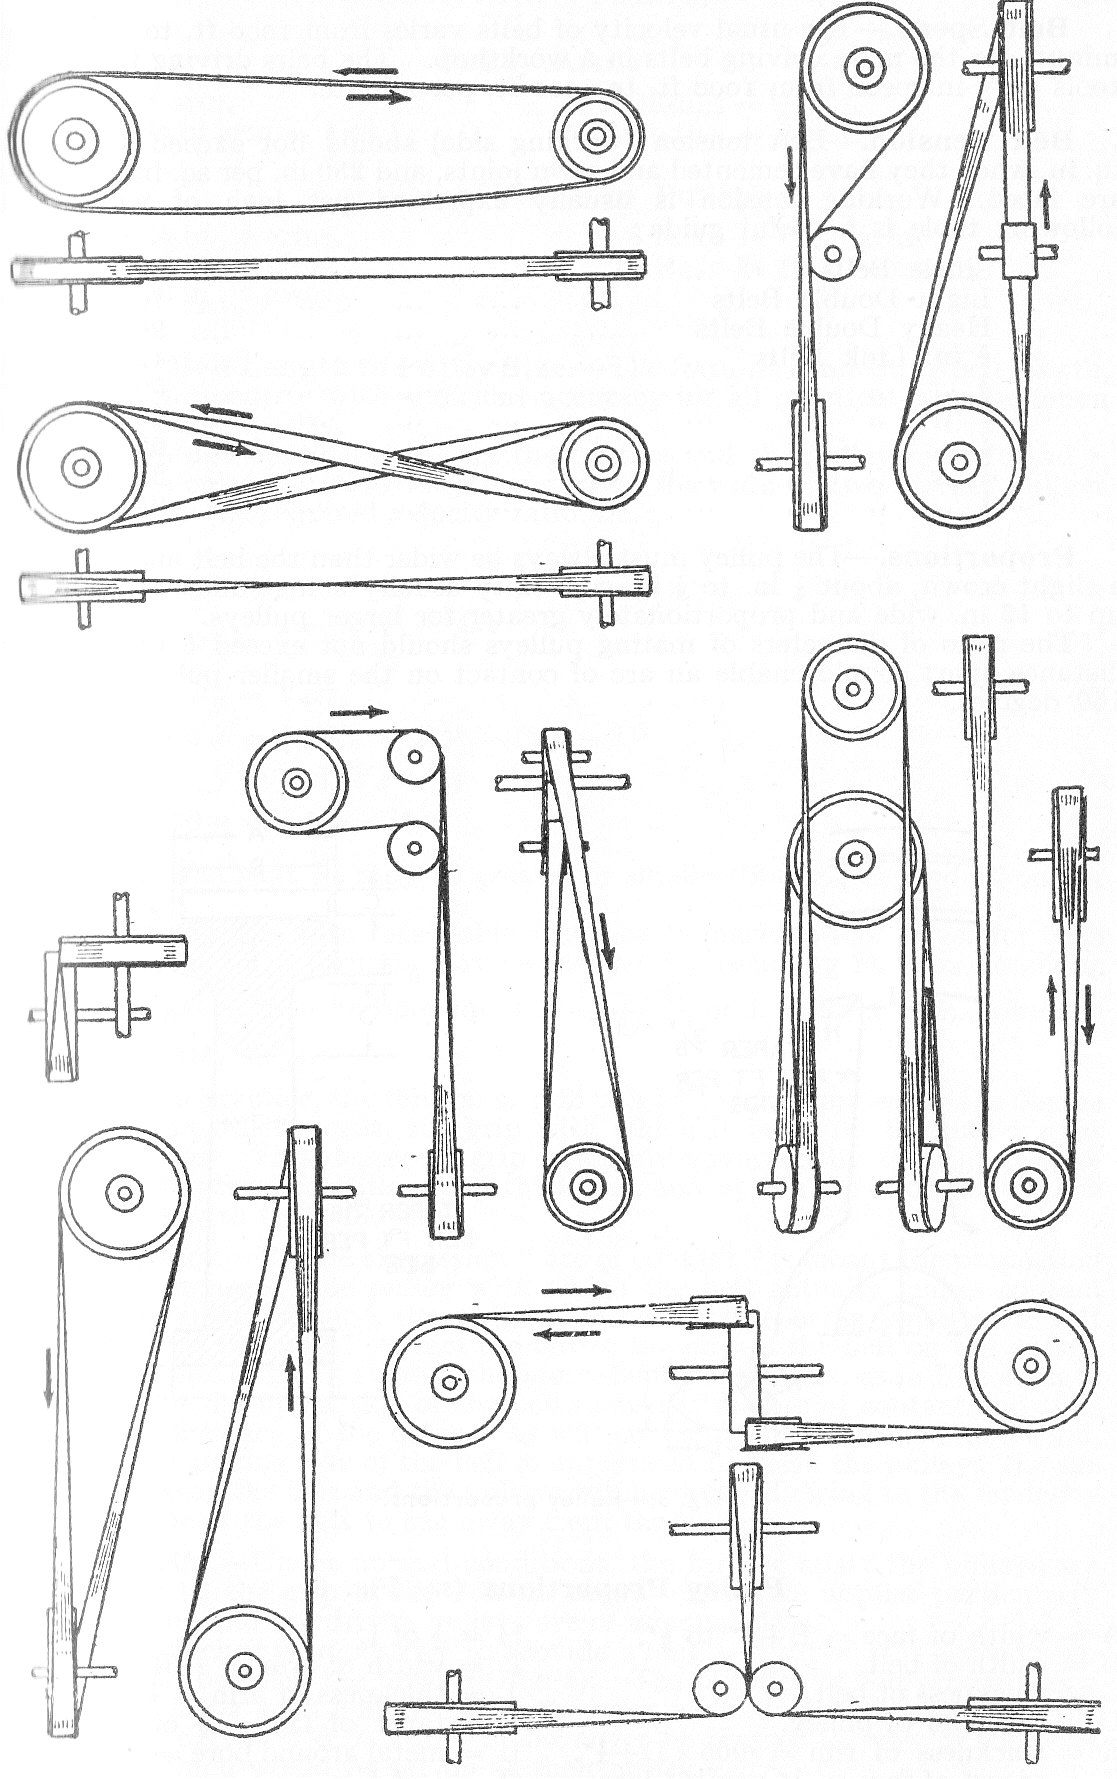 John Deere 60 Parts Diagram on dixie chopper mower deck belt diagram